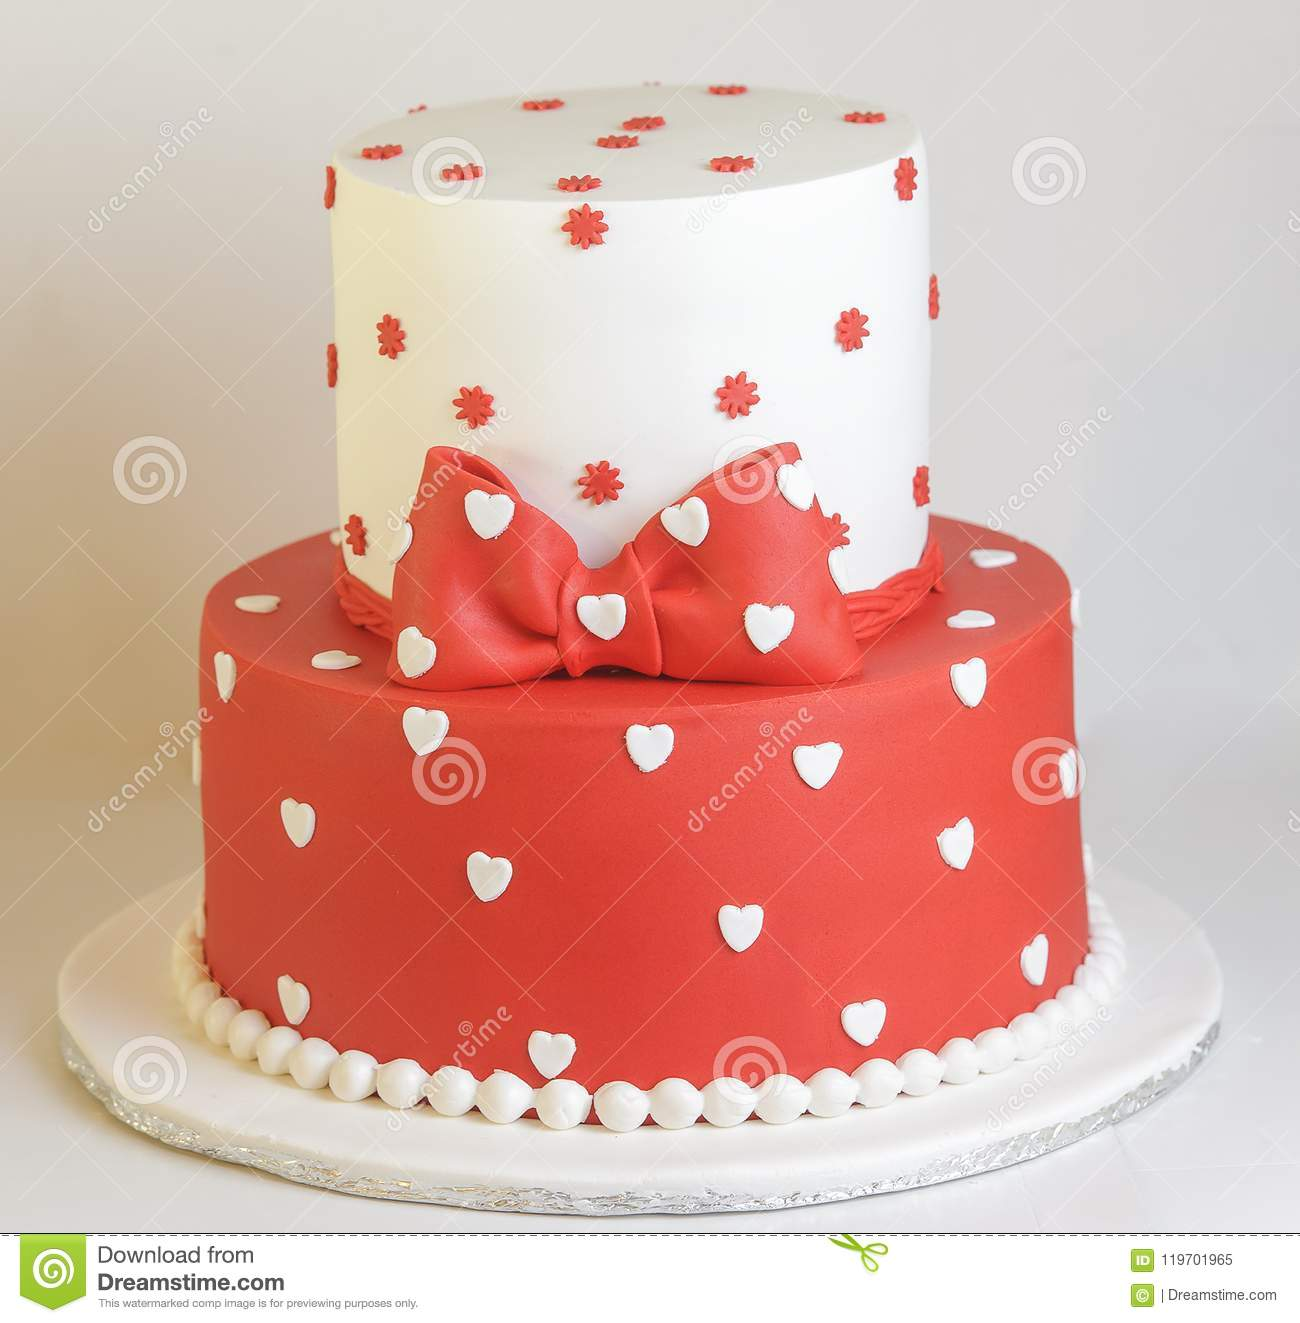 Admirable Hearts And Stars Birthday Cake Stock Image Image Of White Tier Funny Birthday Cards Online Aeocydamsfinfo